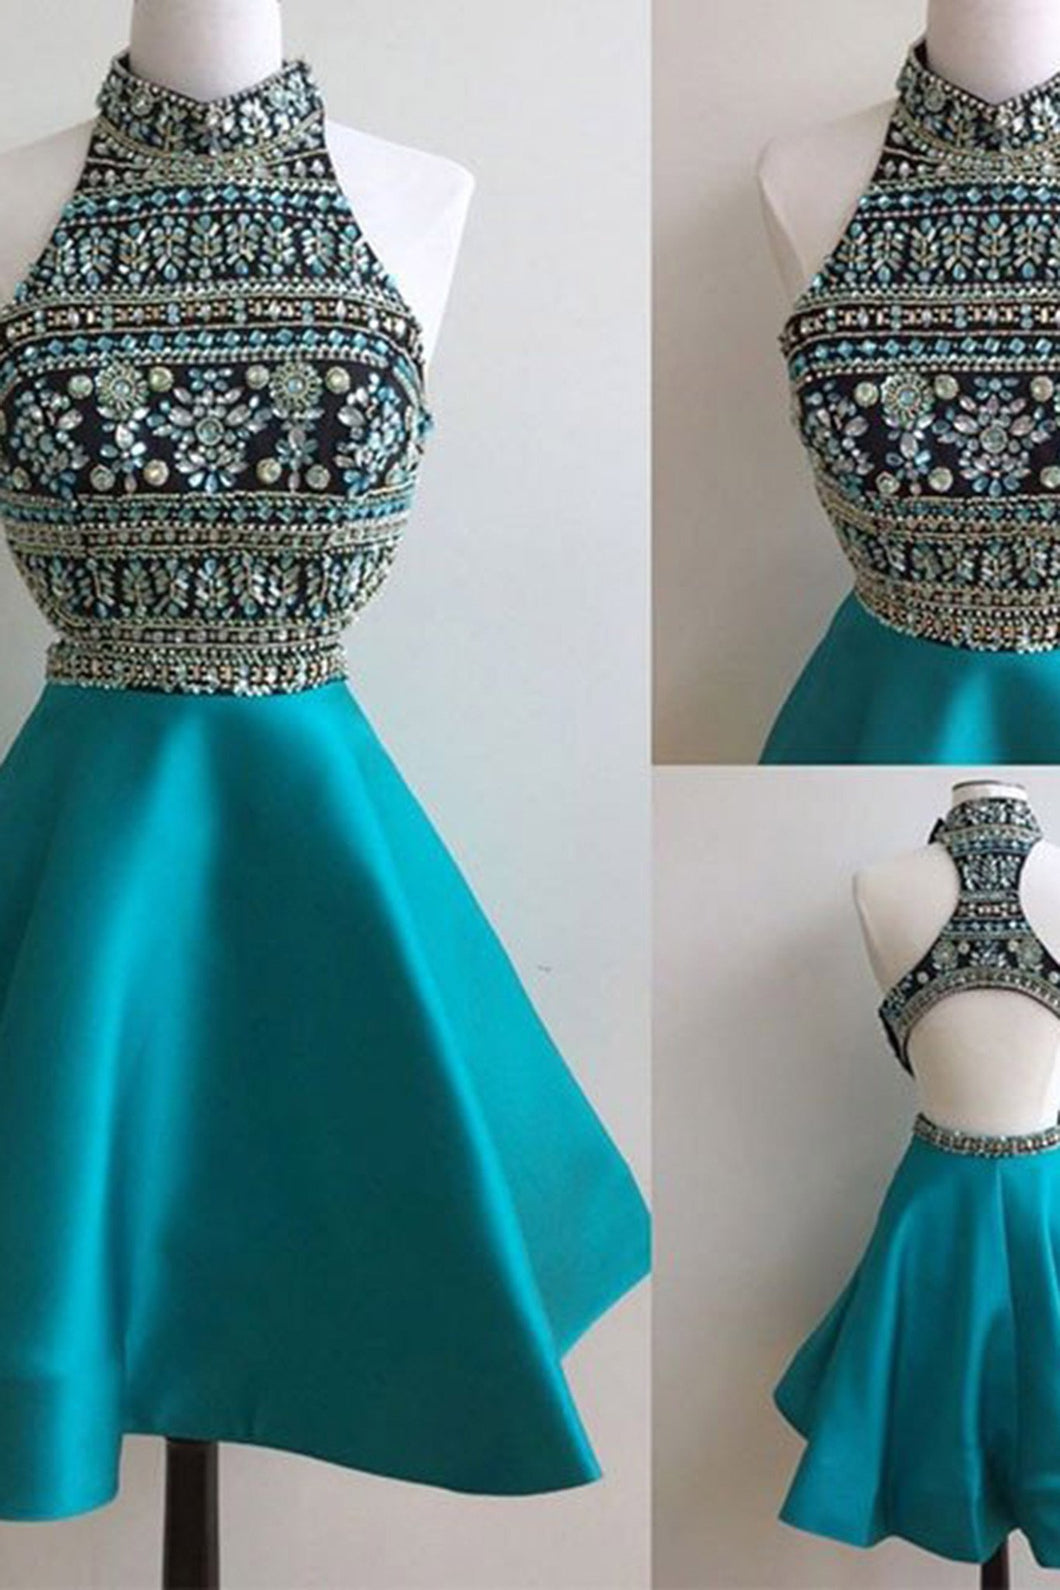 2019 Prom Dresses | Blue satins beading sequins halter A-line short prom dresses for teens,cute dresses